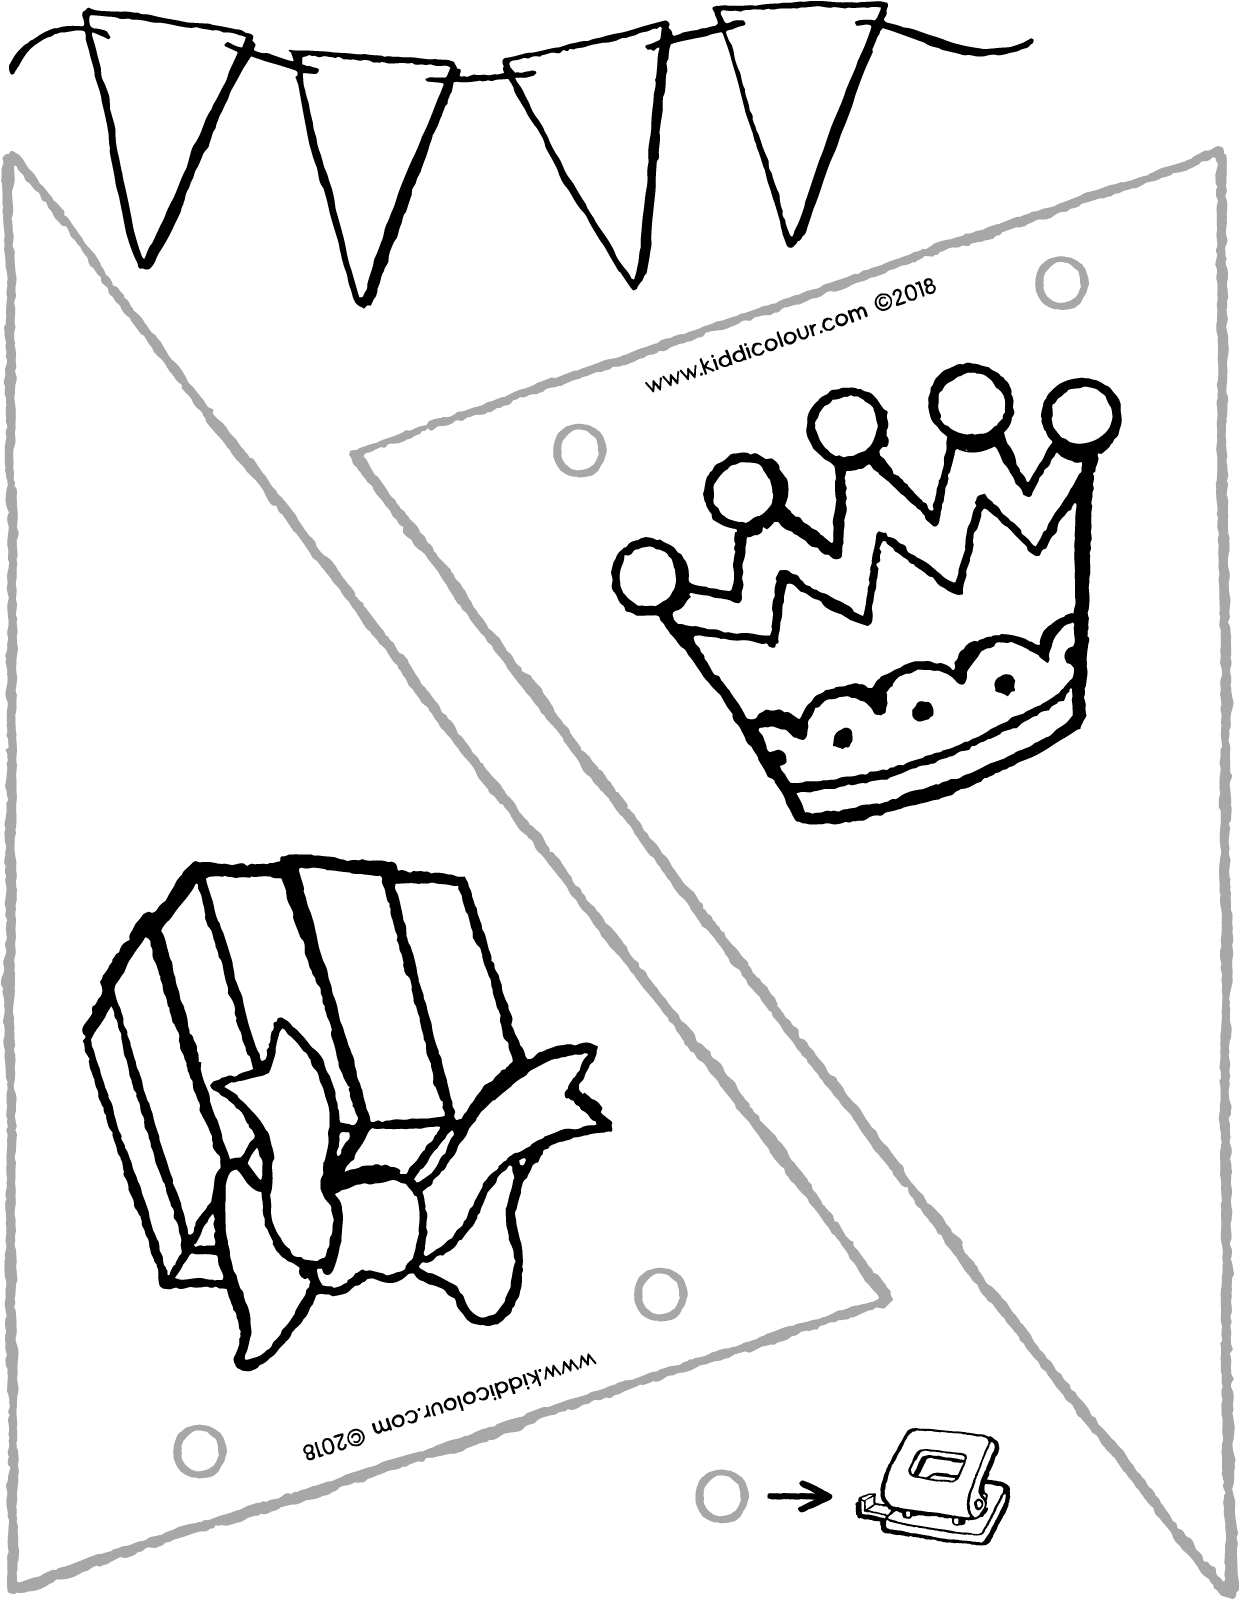 birthday flags colouring page drawing picture 01V